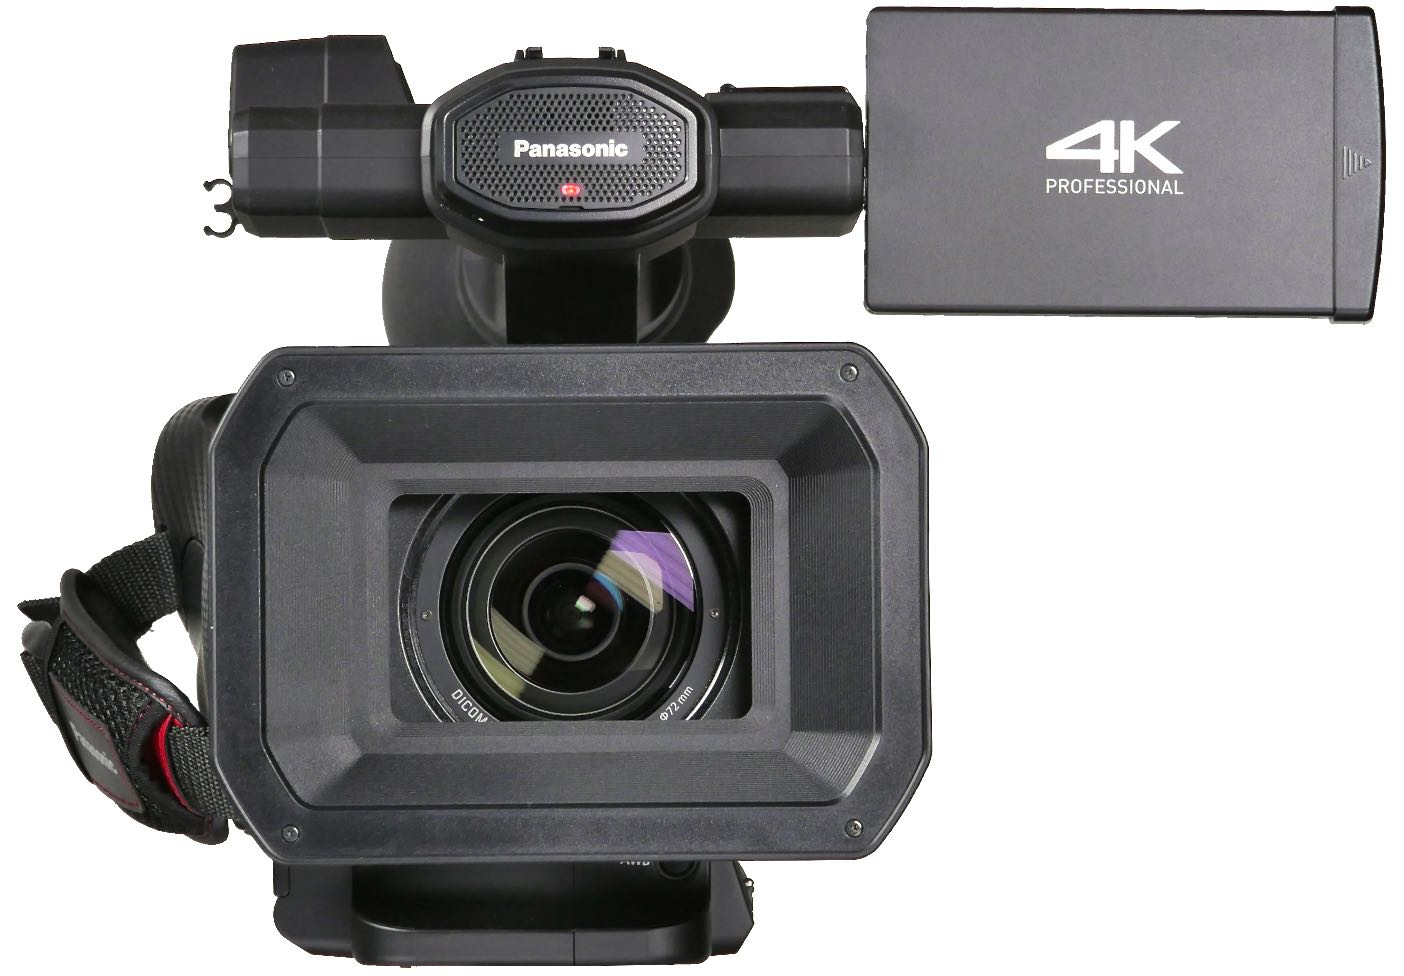 Review Panasonic Ag Dvx200 4 3 Sd To 4k Fixed Lens Camcorder Video Camera Diagram Labeled Chapter The Front View